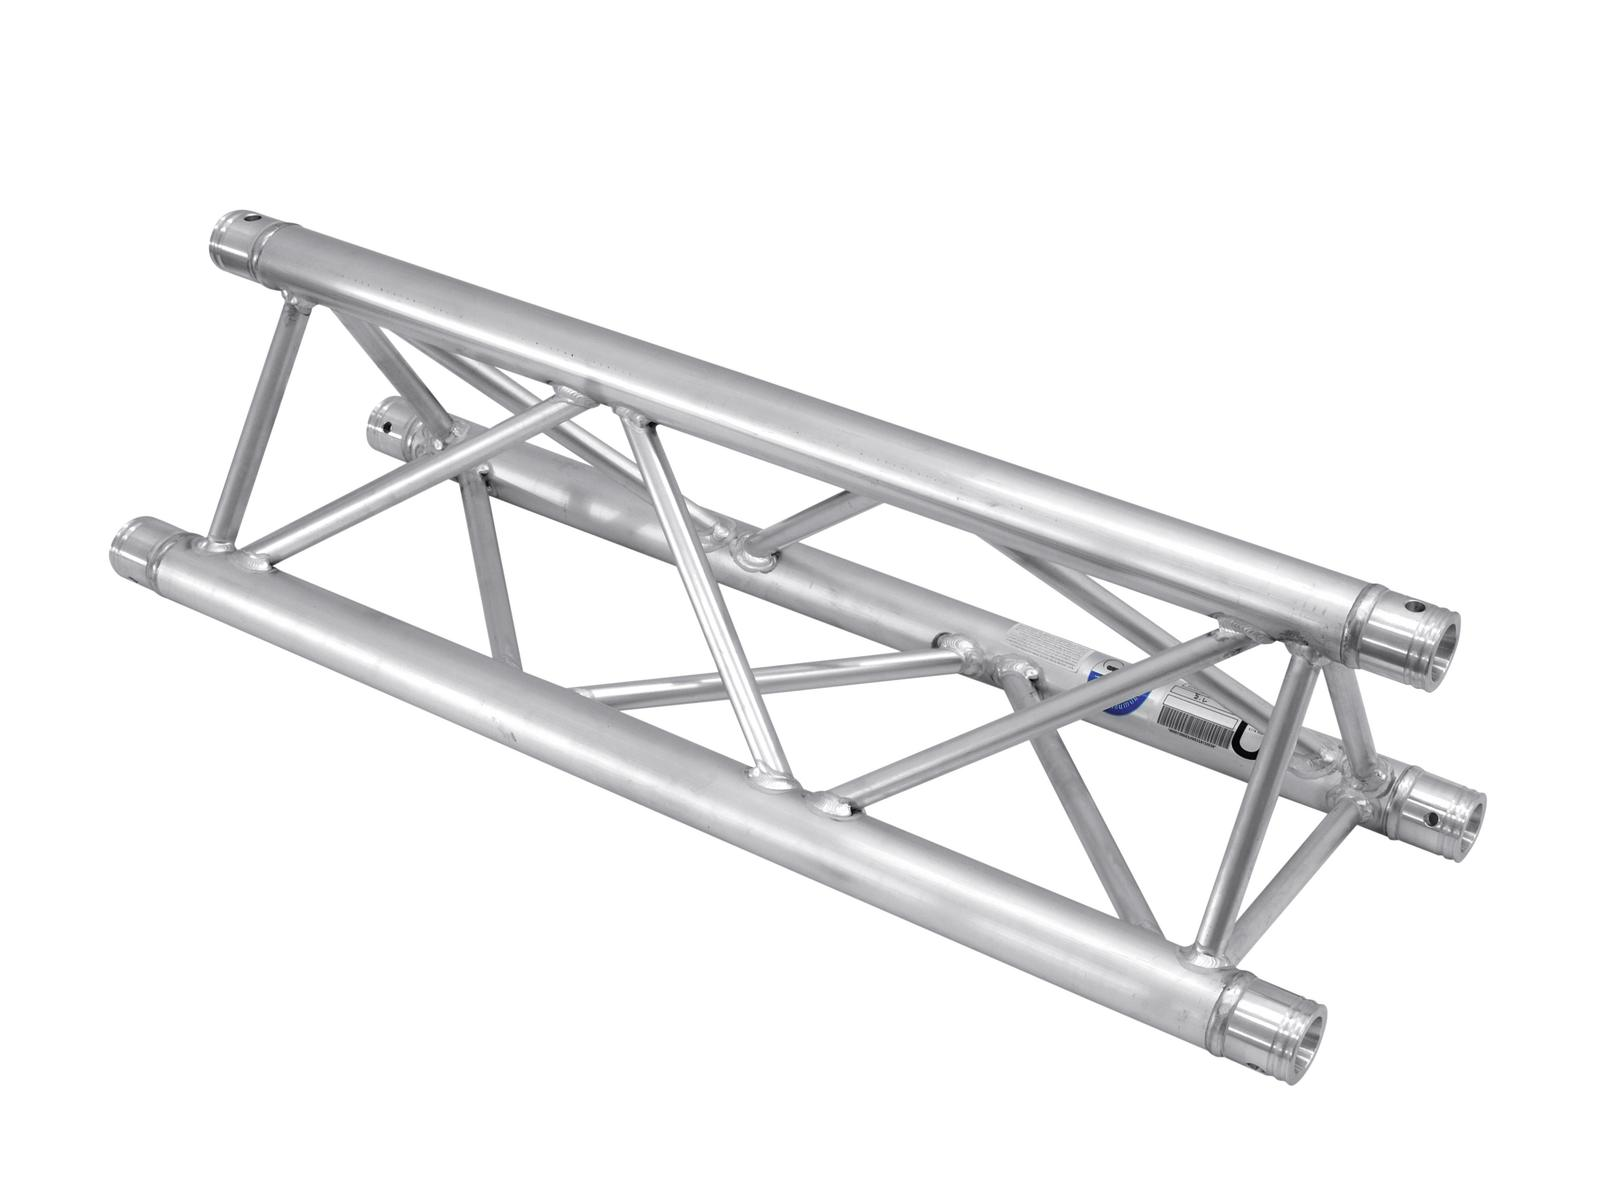 ALUTRUSS TRILOCK E-GL33 2500 a 3 vie traverse